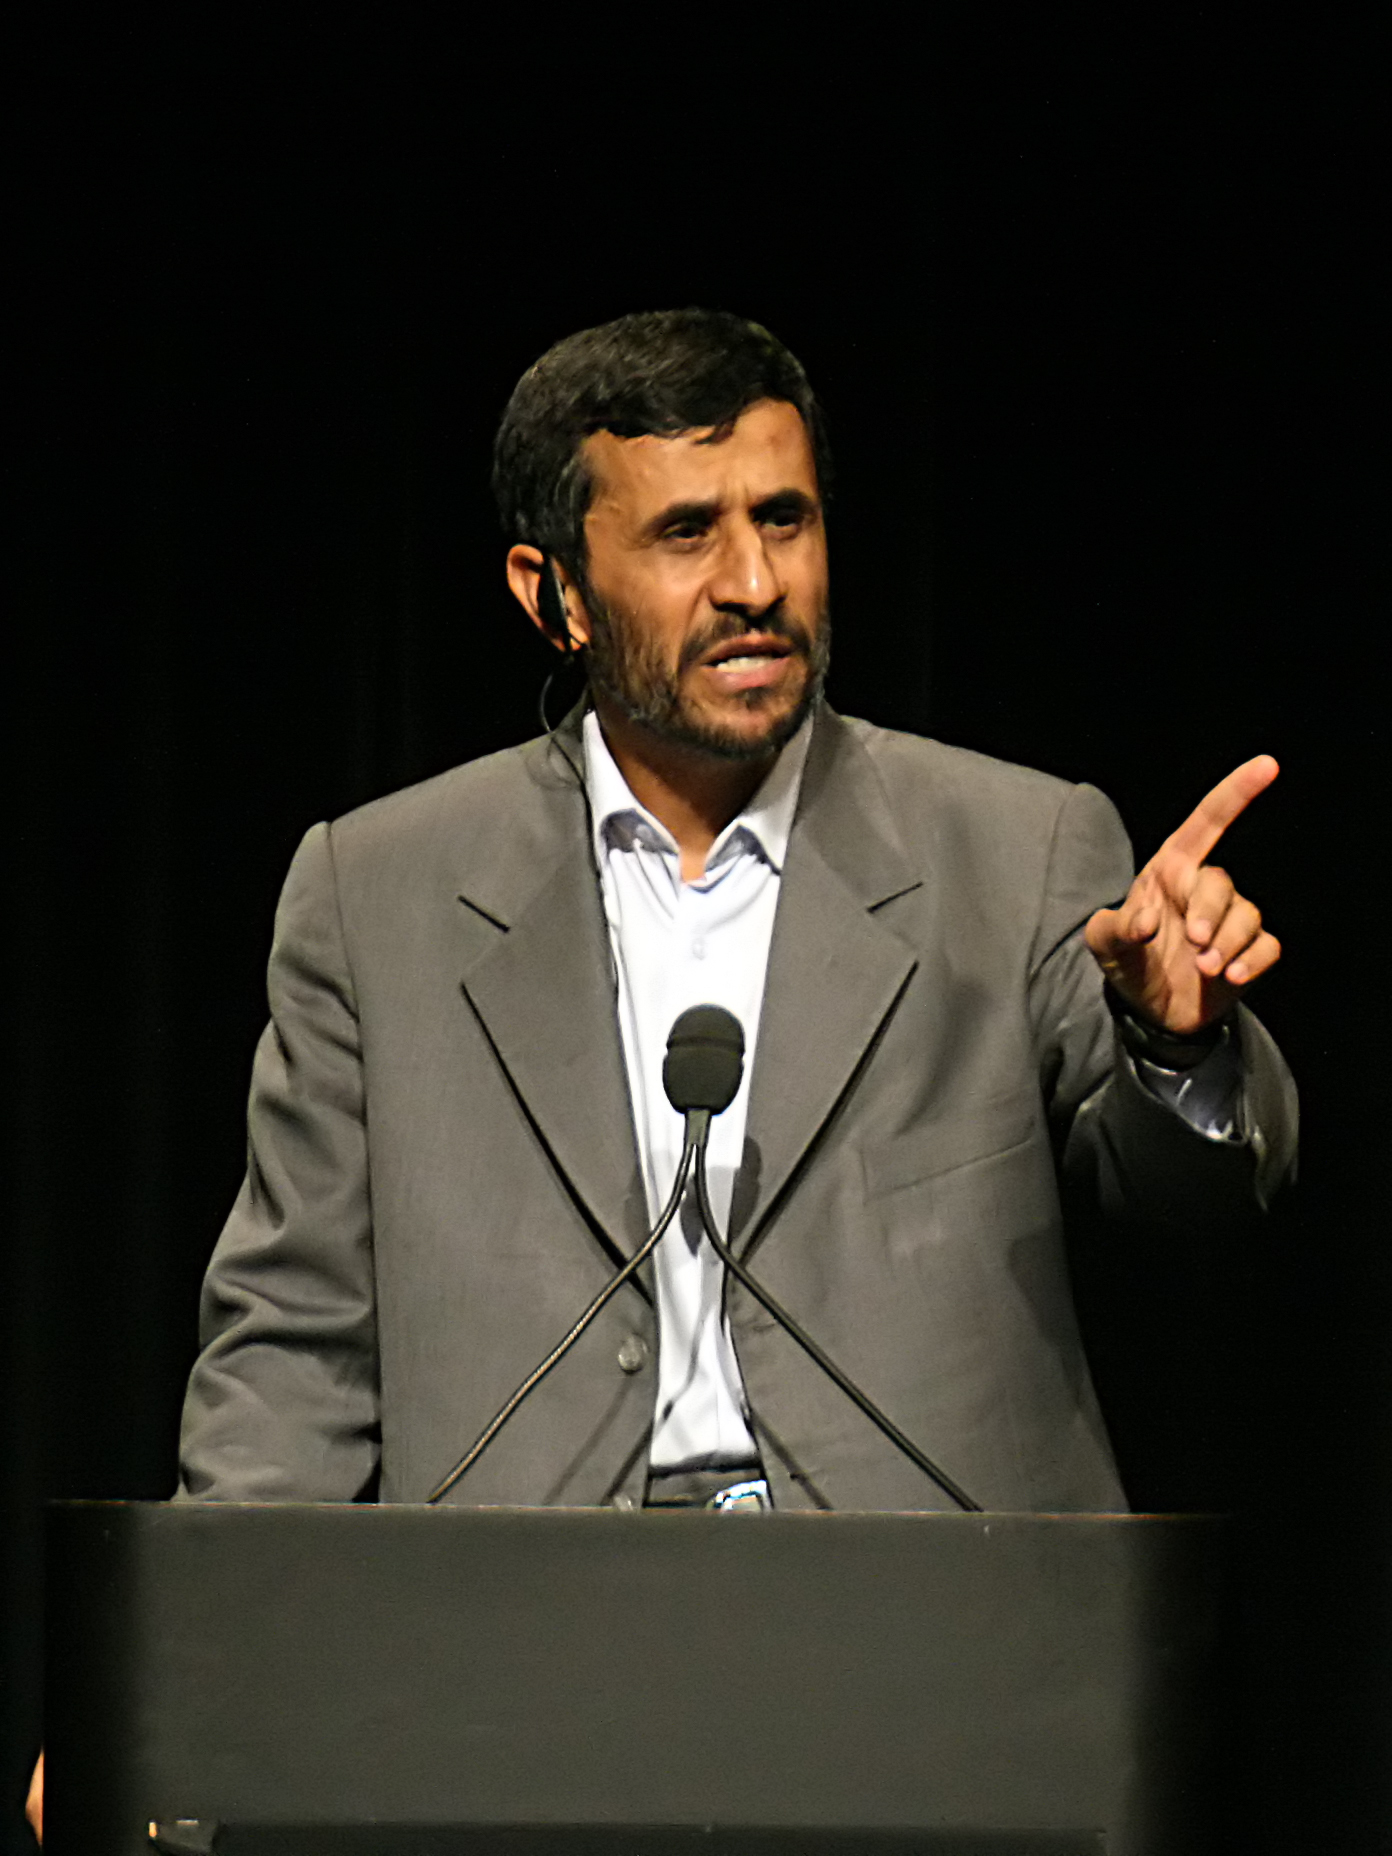 http://upload.wikimedia.org/wikipedia/commons/1/18/Mahmoud_Ahmadinejad.jpg